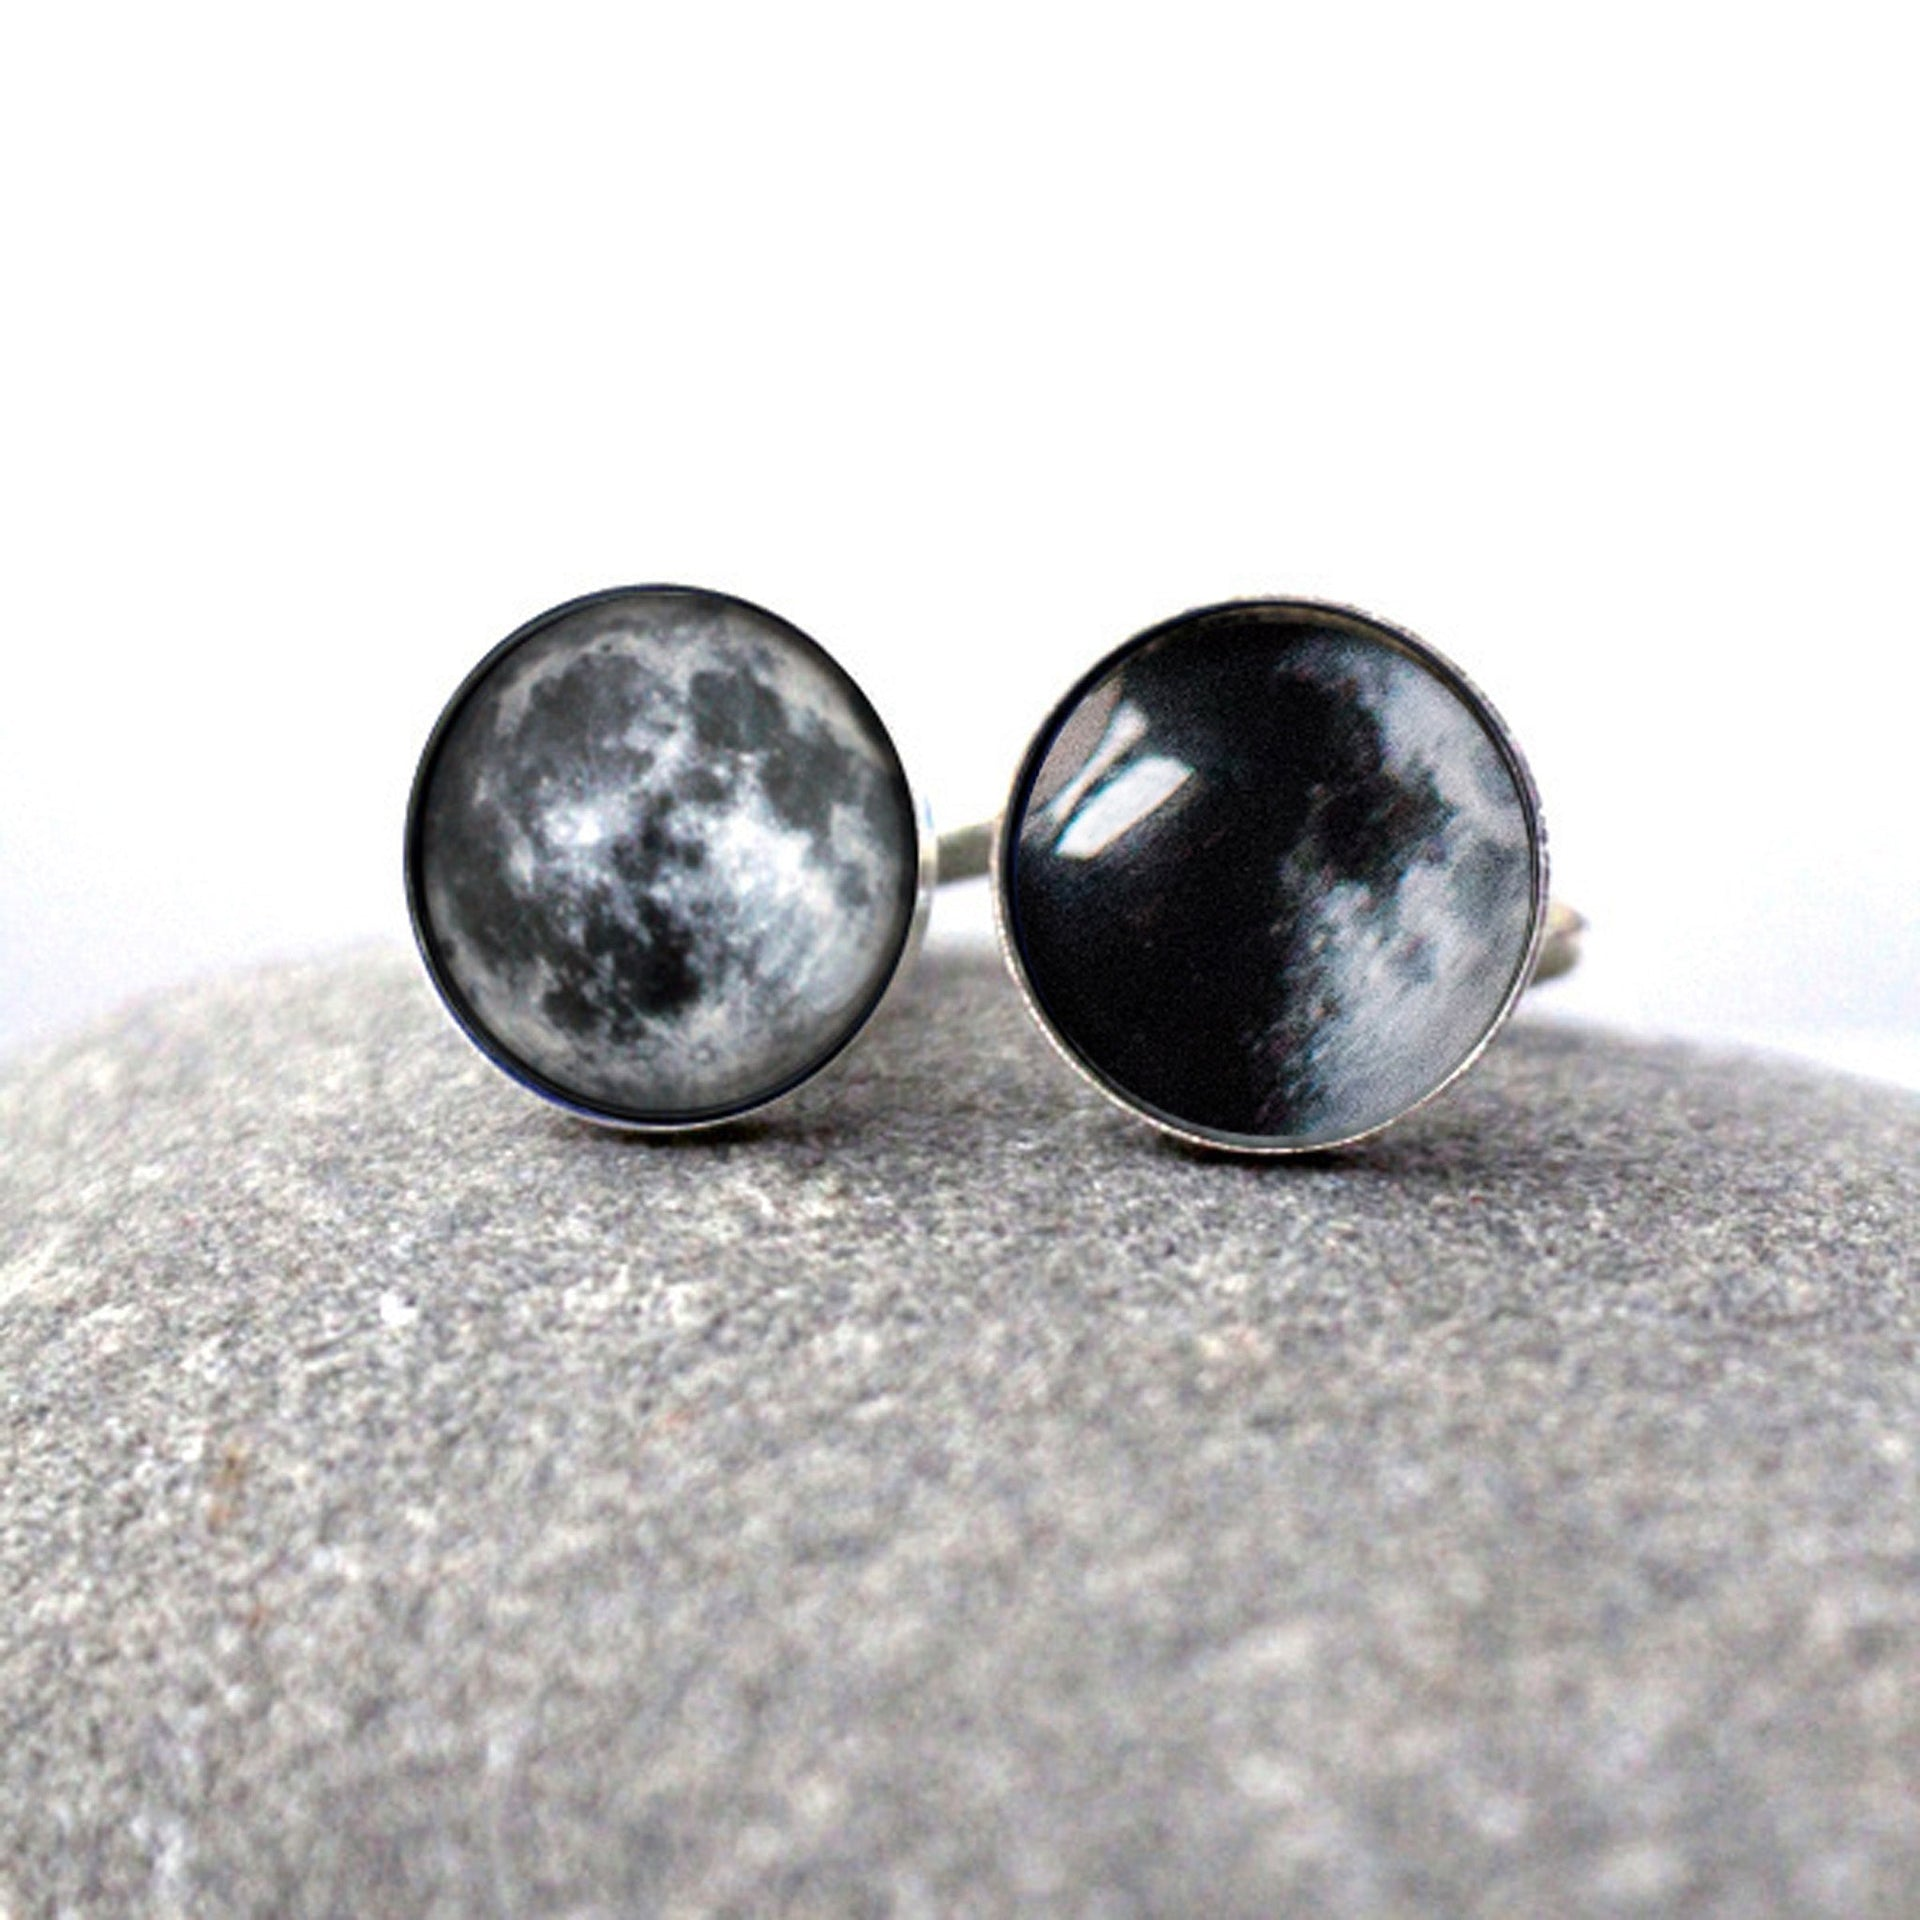 Limited Custom Moon Date Cufflinks & Pin Set